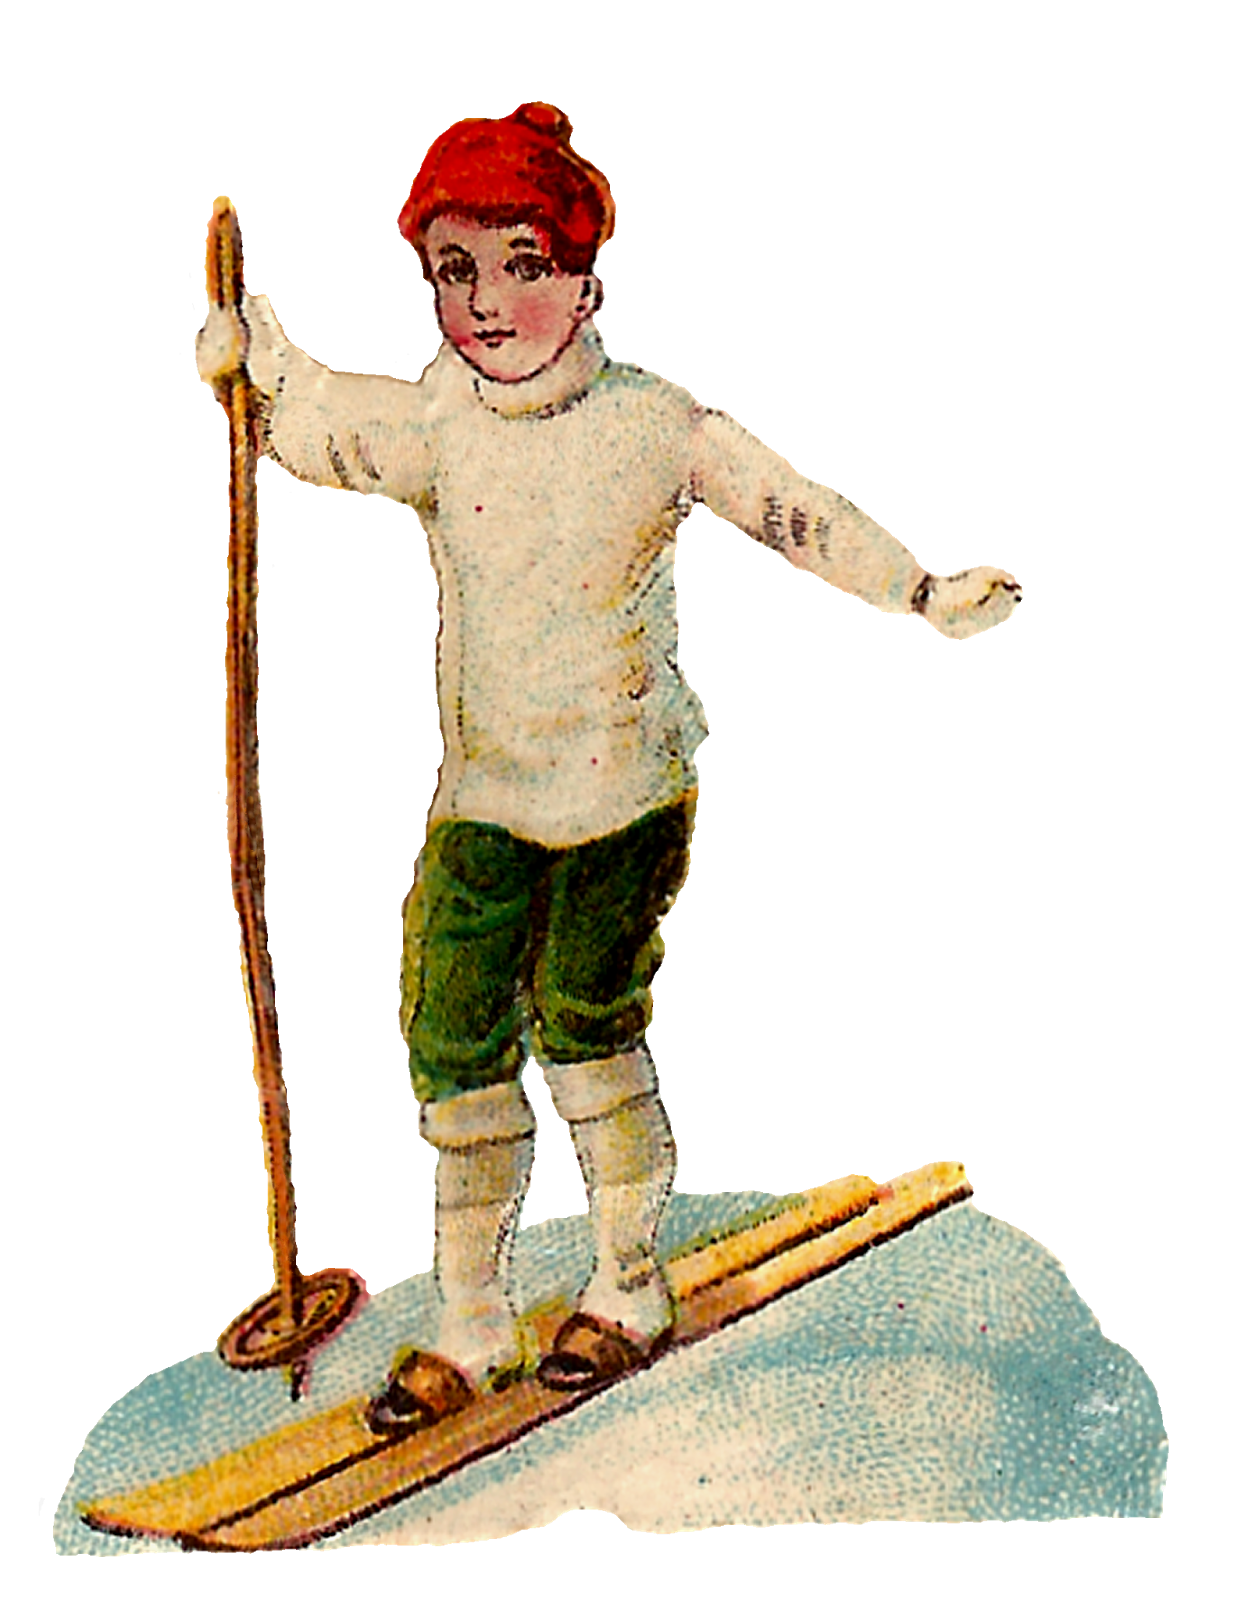 Antique images free vintage. Girl clipart skiing